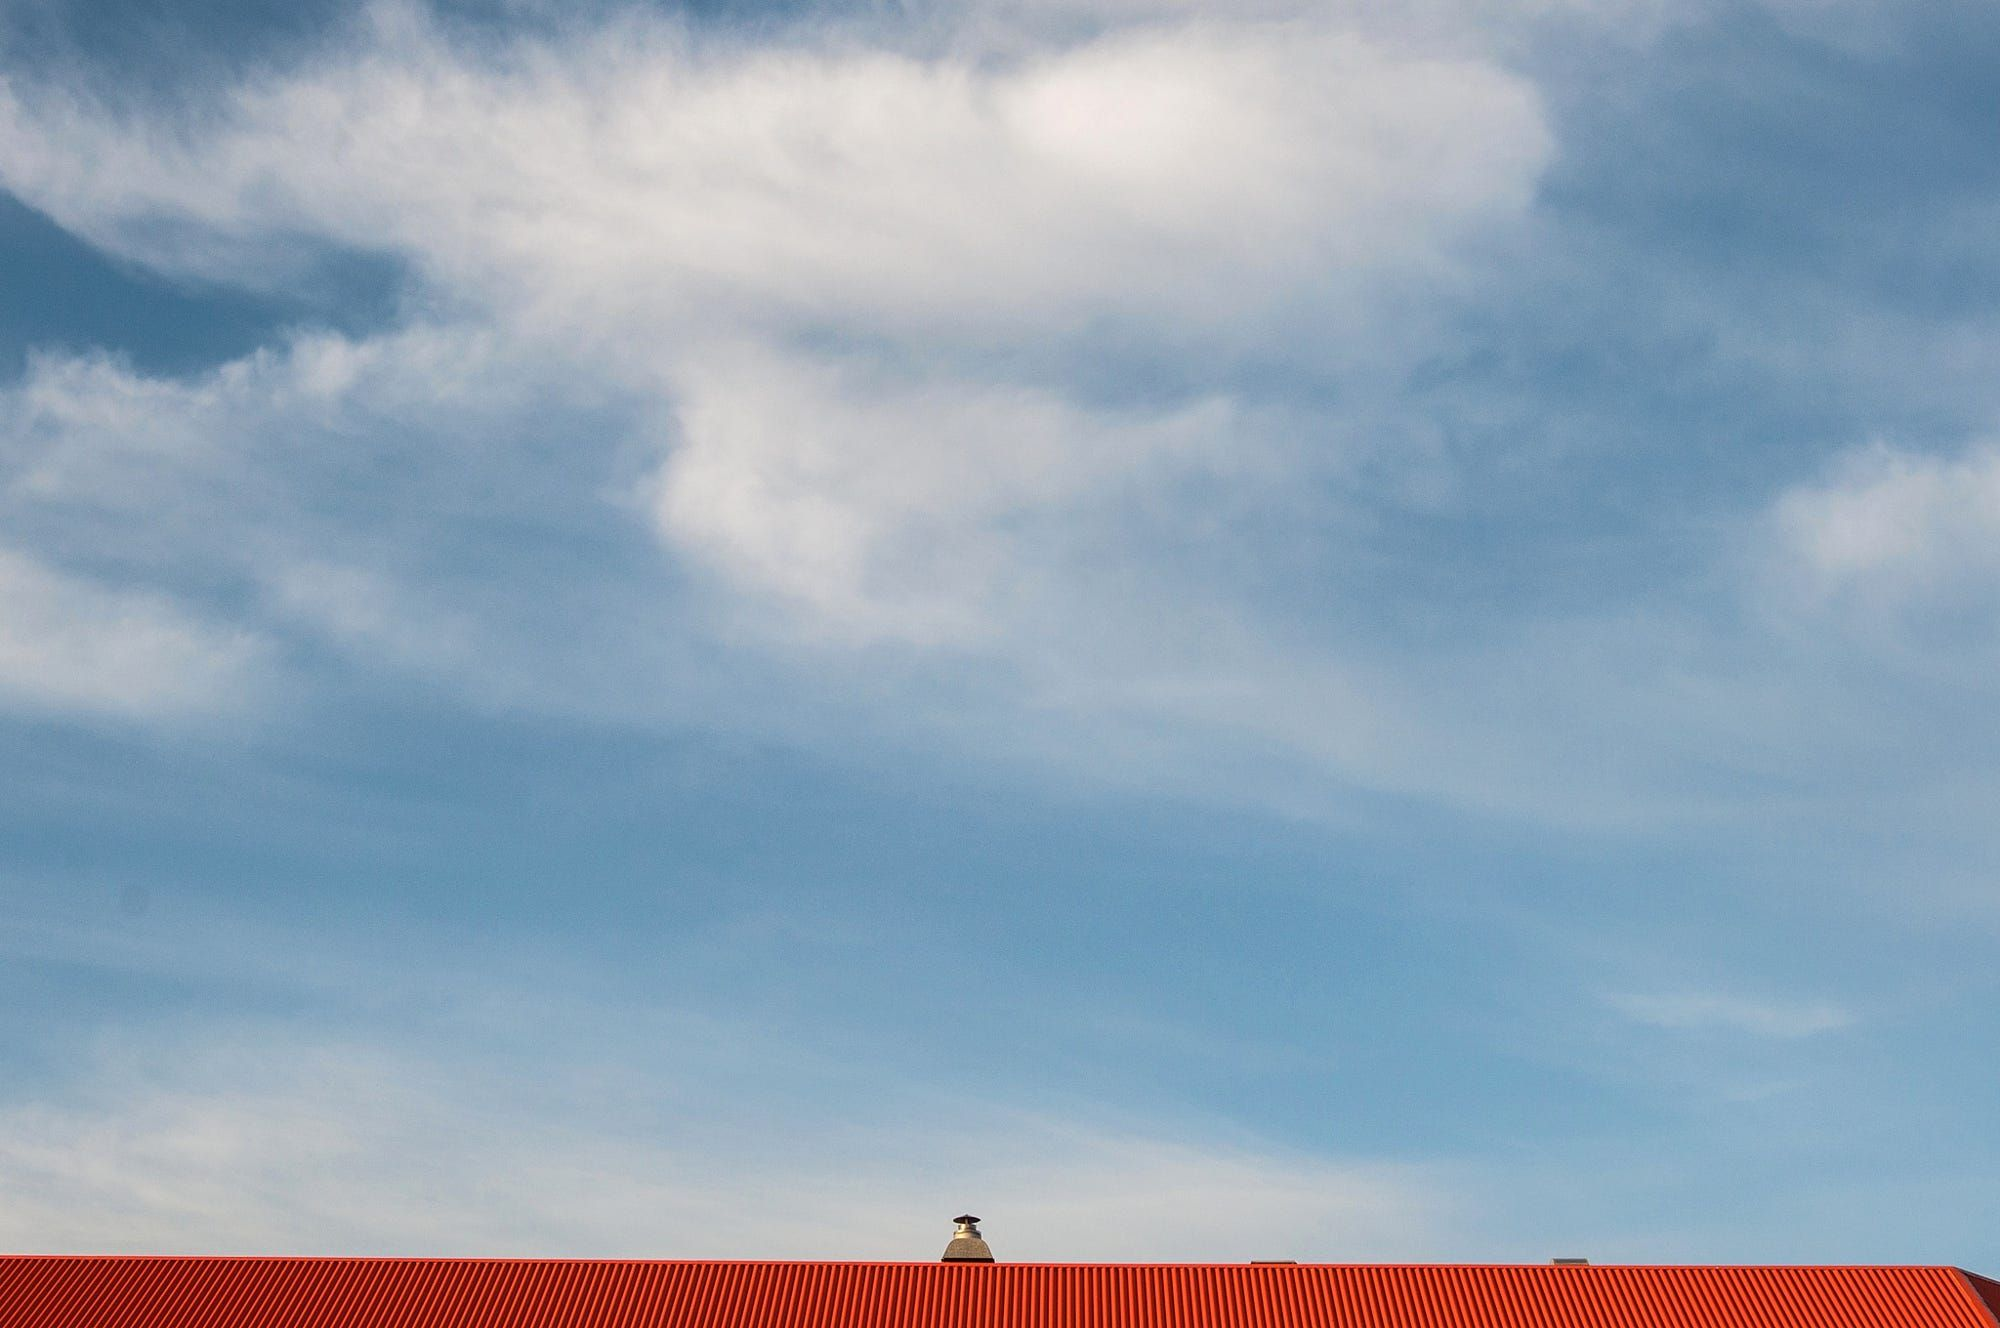 Urban Exploration: Red Roof Clouds Above by eklinger1 https://t.co/Zhej9SnHt8 | #500px #photography #photos https://t.co/V59F2BAhGa #fol #photography